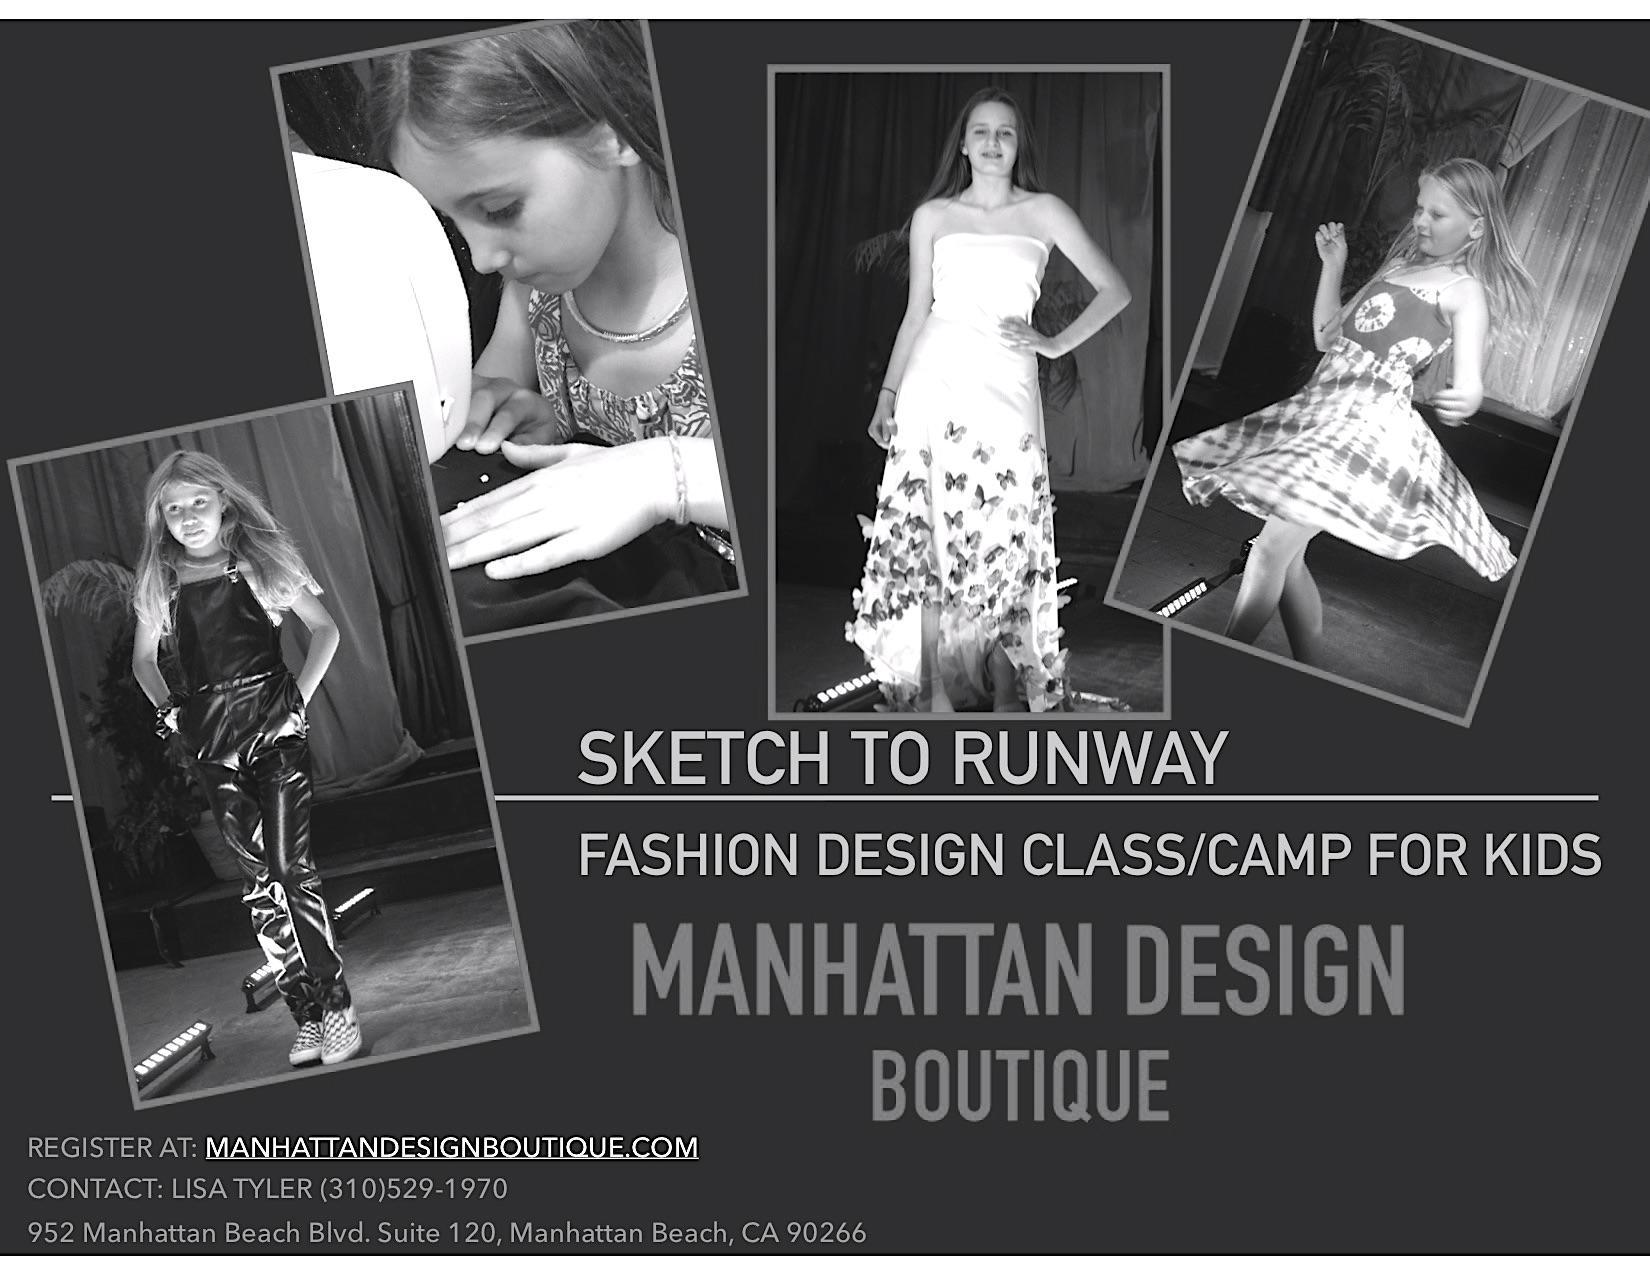 manhattan boutique design ad